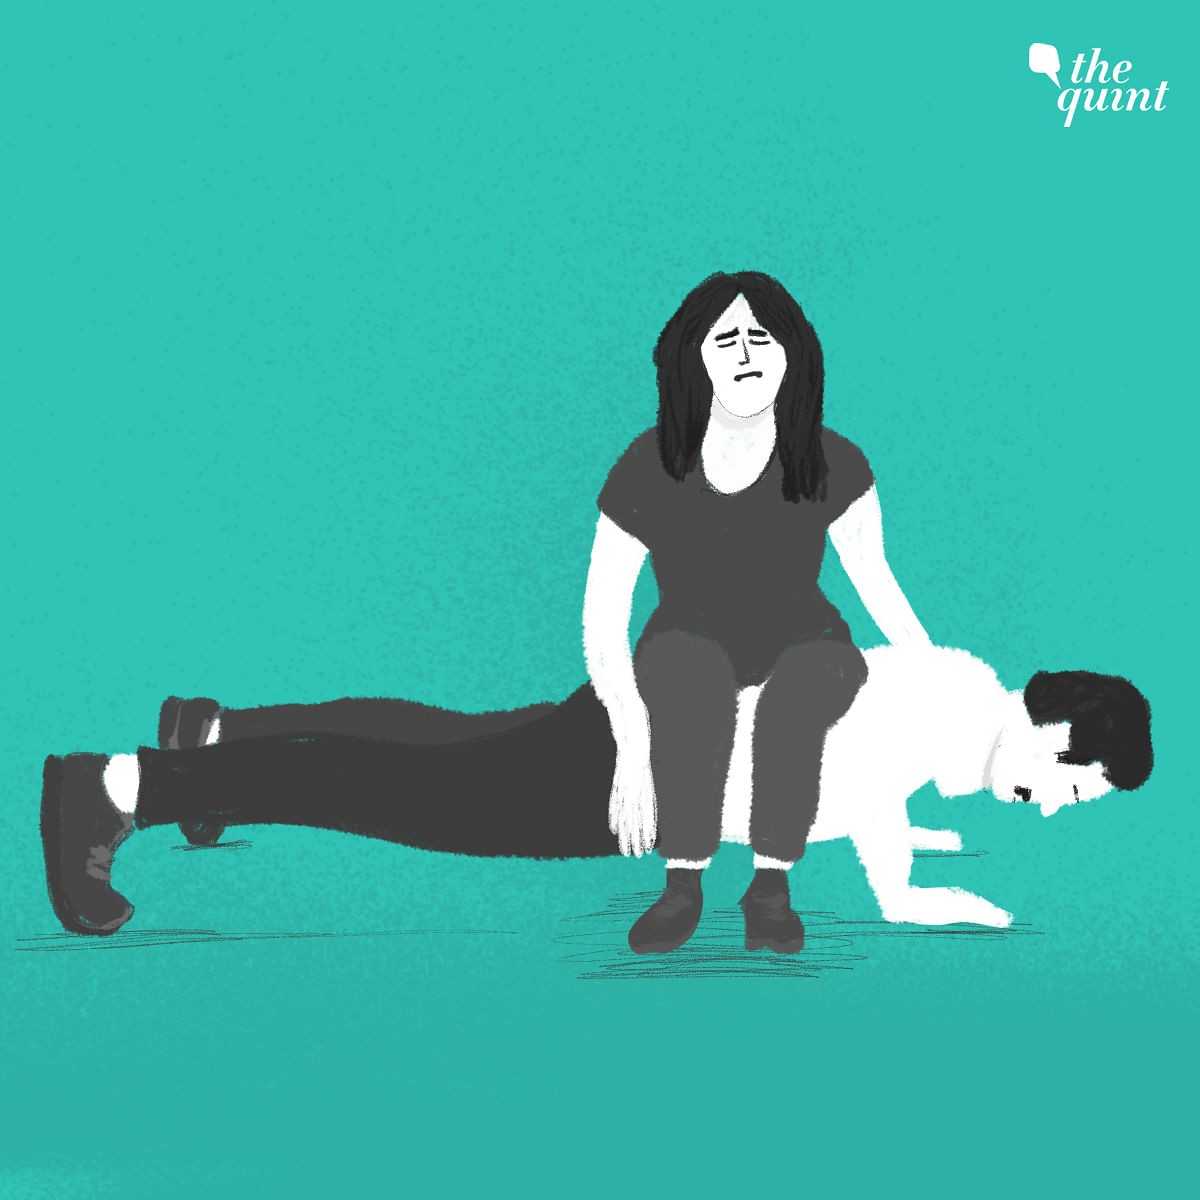 Apoorva has alleged that she was asked by her professor to act like his body weight during push-ups.